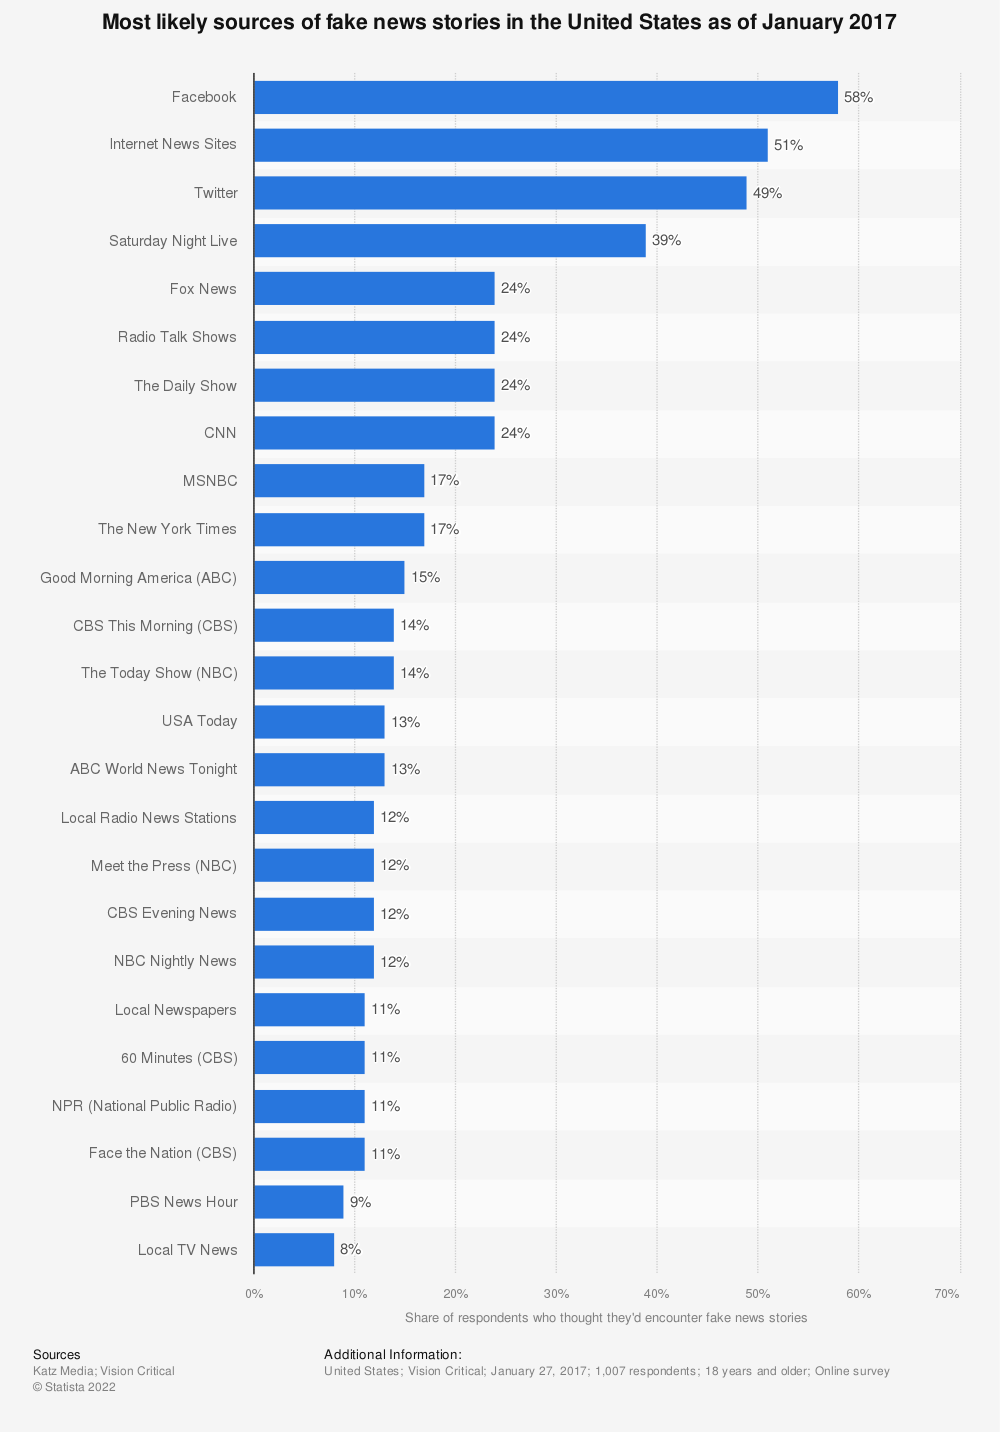 Statistic: Most likely sources of fake news stories in the United States as of January 2017 | Statista